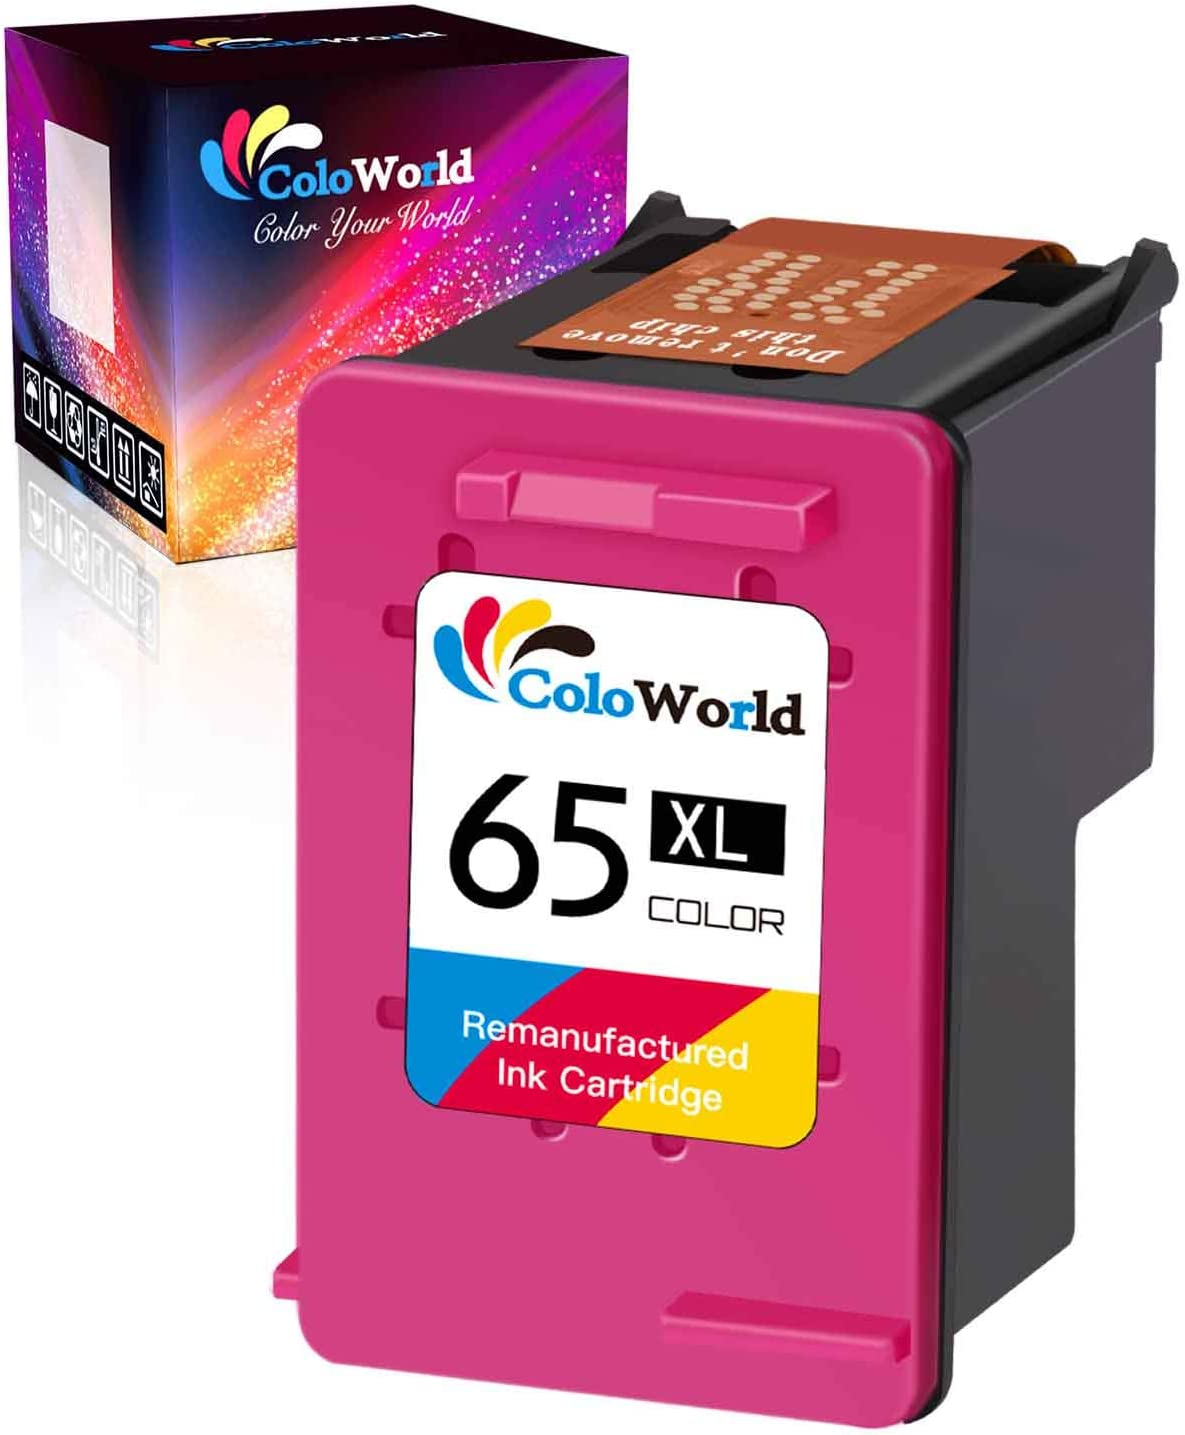 ColoWorld Remanufactured 65XL 65 Ink Cartridge Replacement for HP 65 65XL Ink Work with HP Envy 5055 5052 5010 DeskJet 2622 3755 3735 2655 3752 2652 2624 3720 3752 2652 AMP 100 Printer (1 Color)